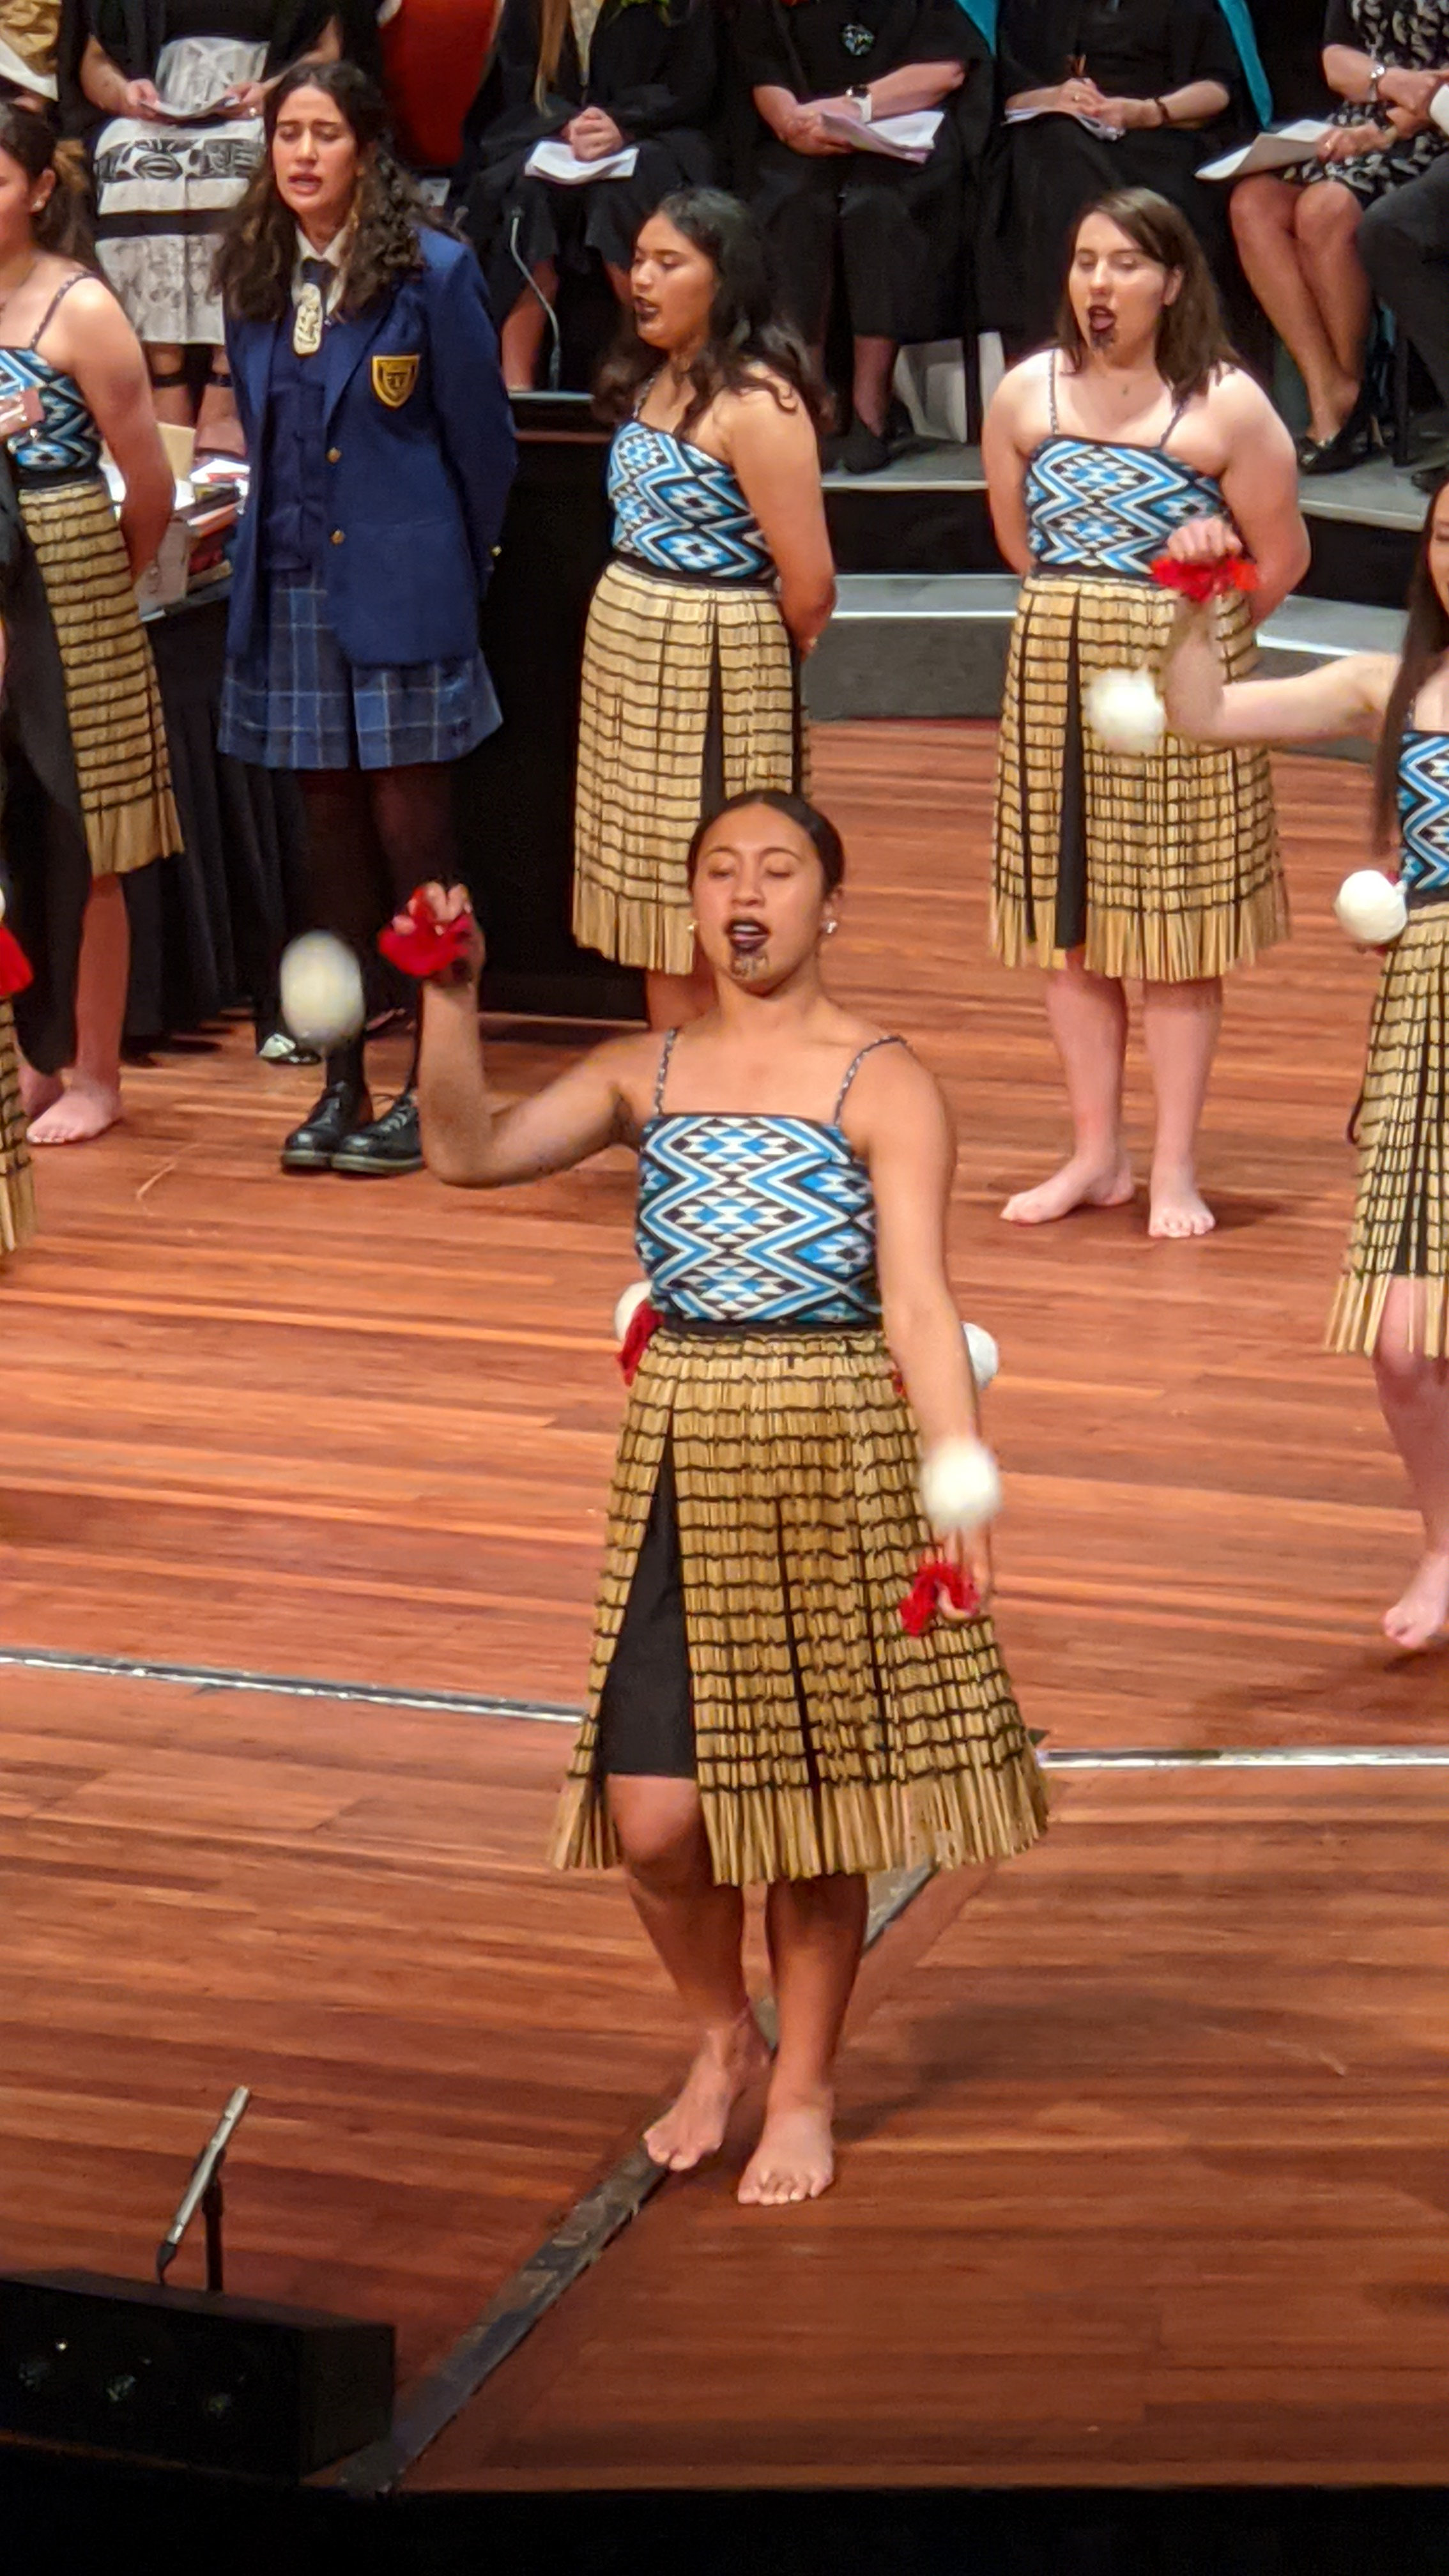 Wahine performing on stage